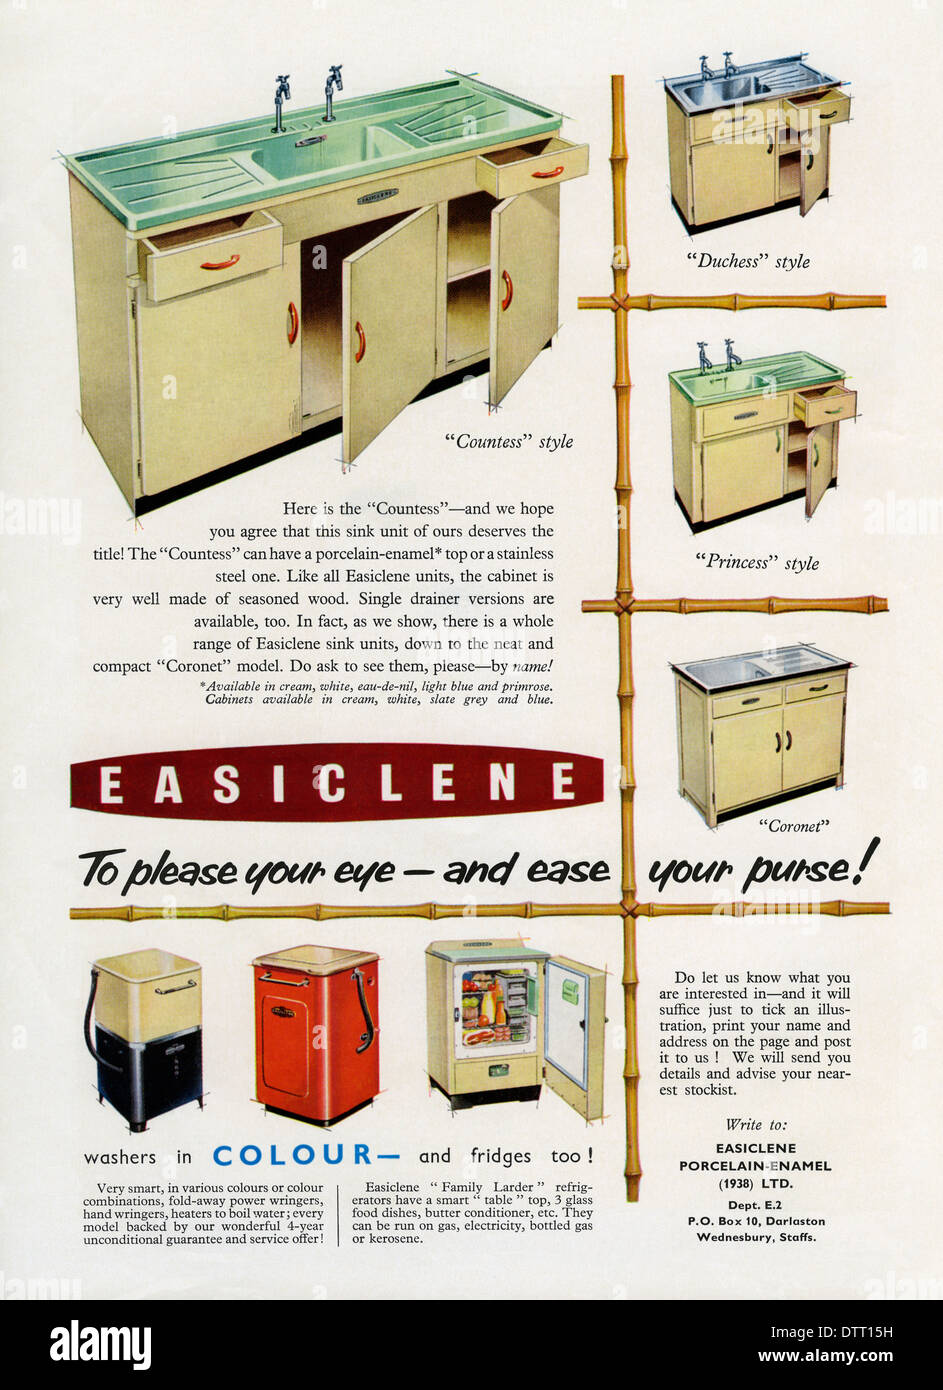 Kitchen Sink Appliances for sale 16 kitchen sink appliances on hidden small appliances home design ideas pictures Old Advert For Easiclene Easy Clean Kitchen Sink Units And Appliances The Advert